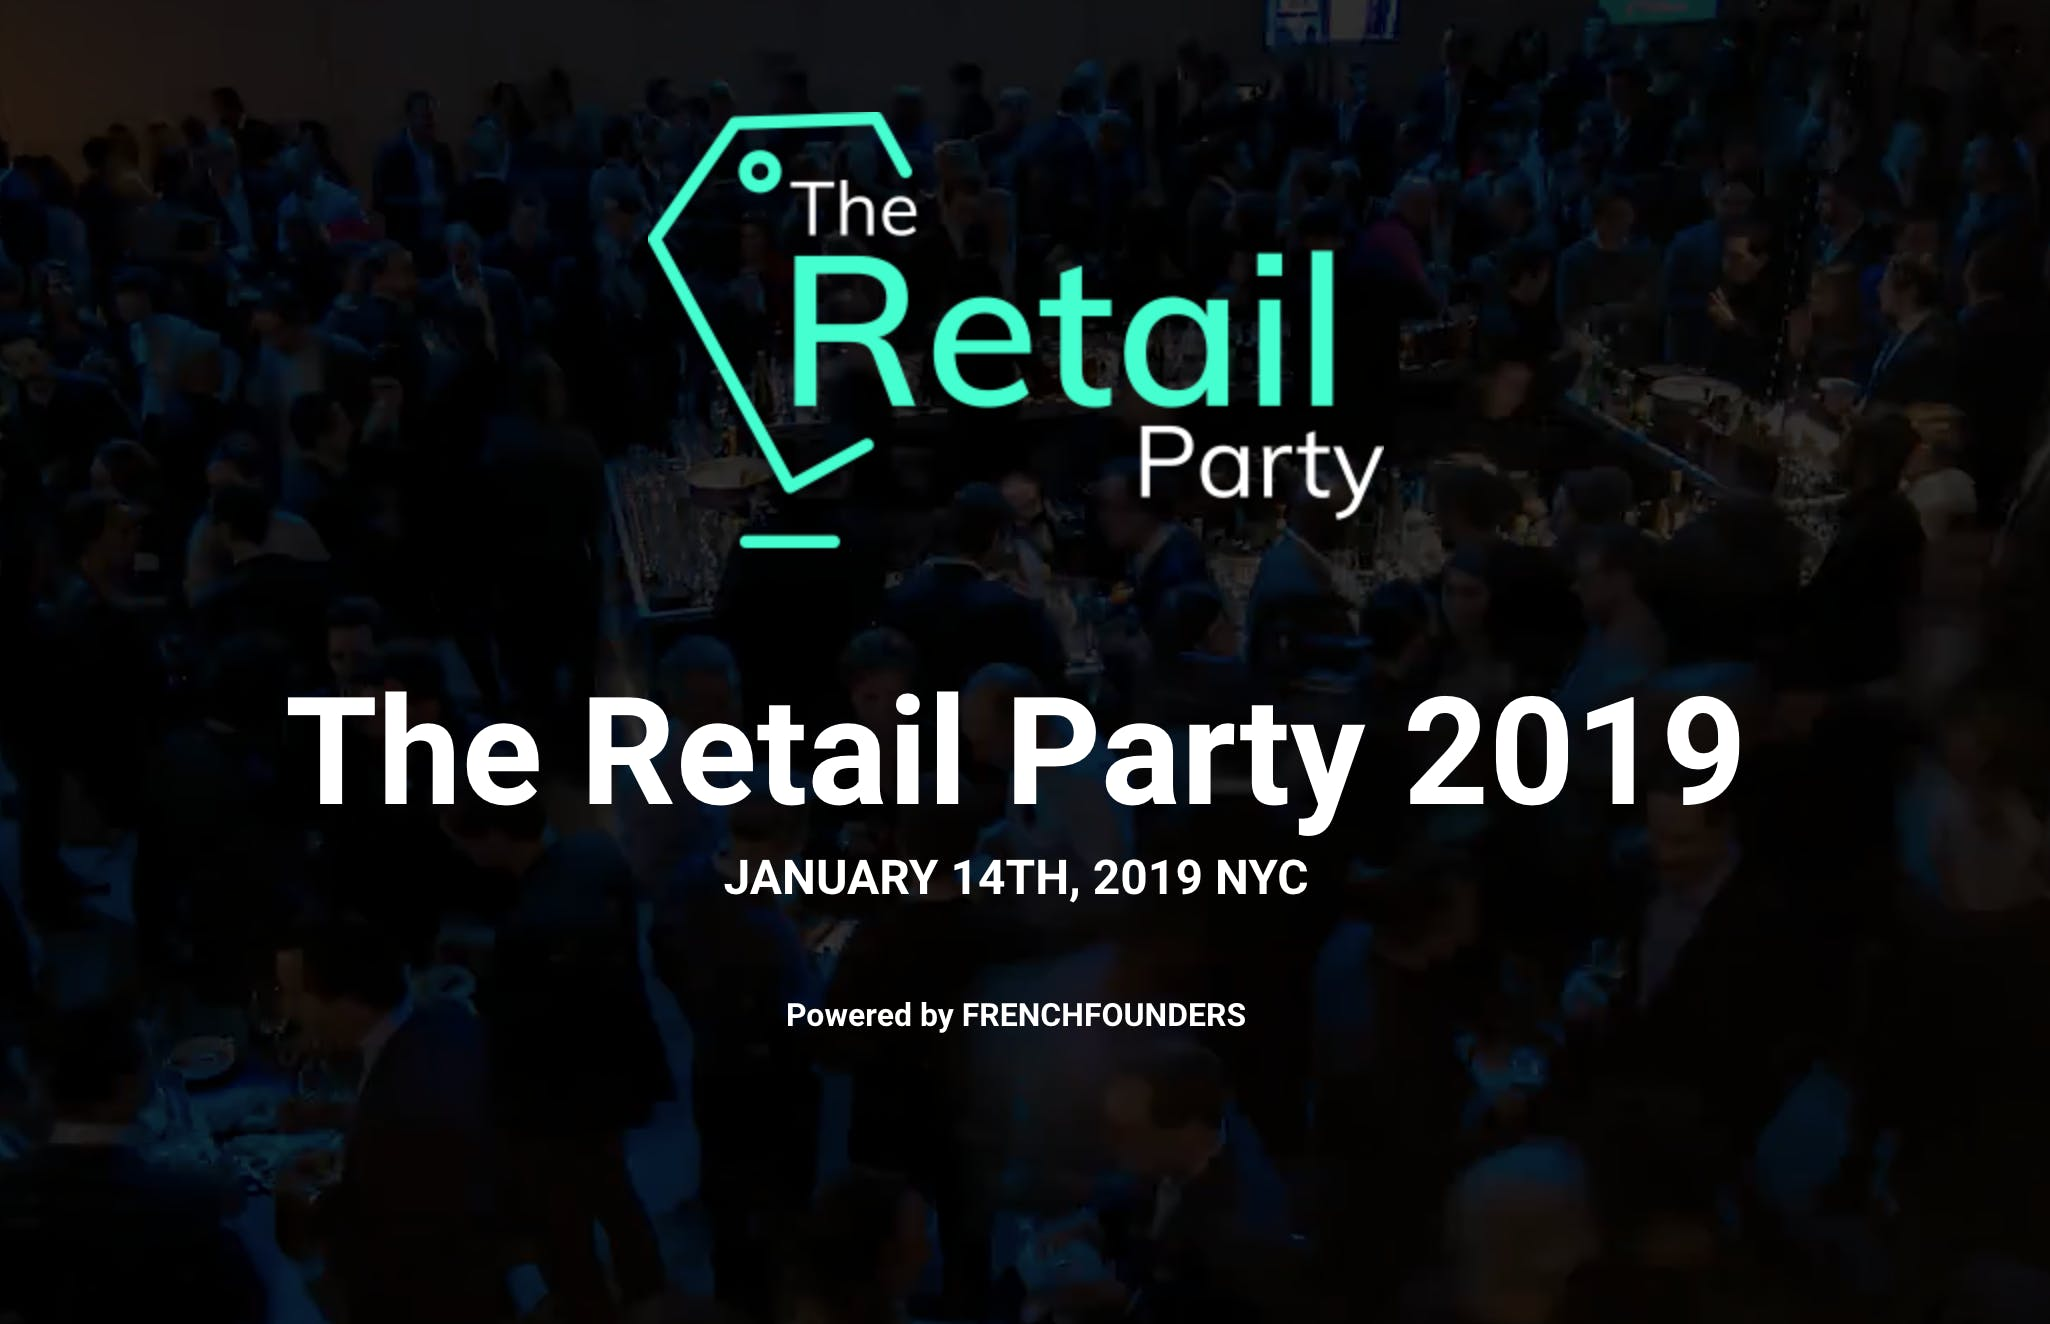 The Retail Party 2019